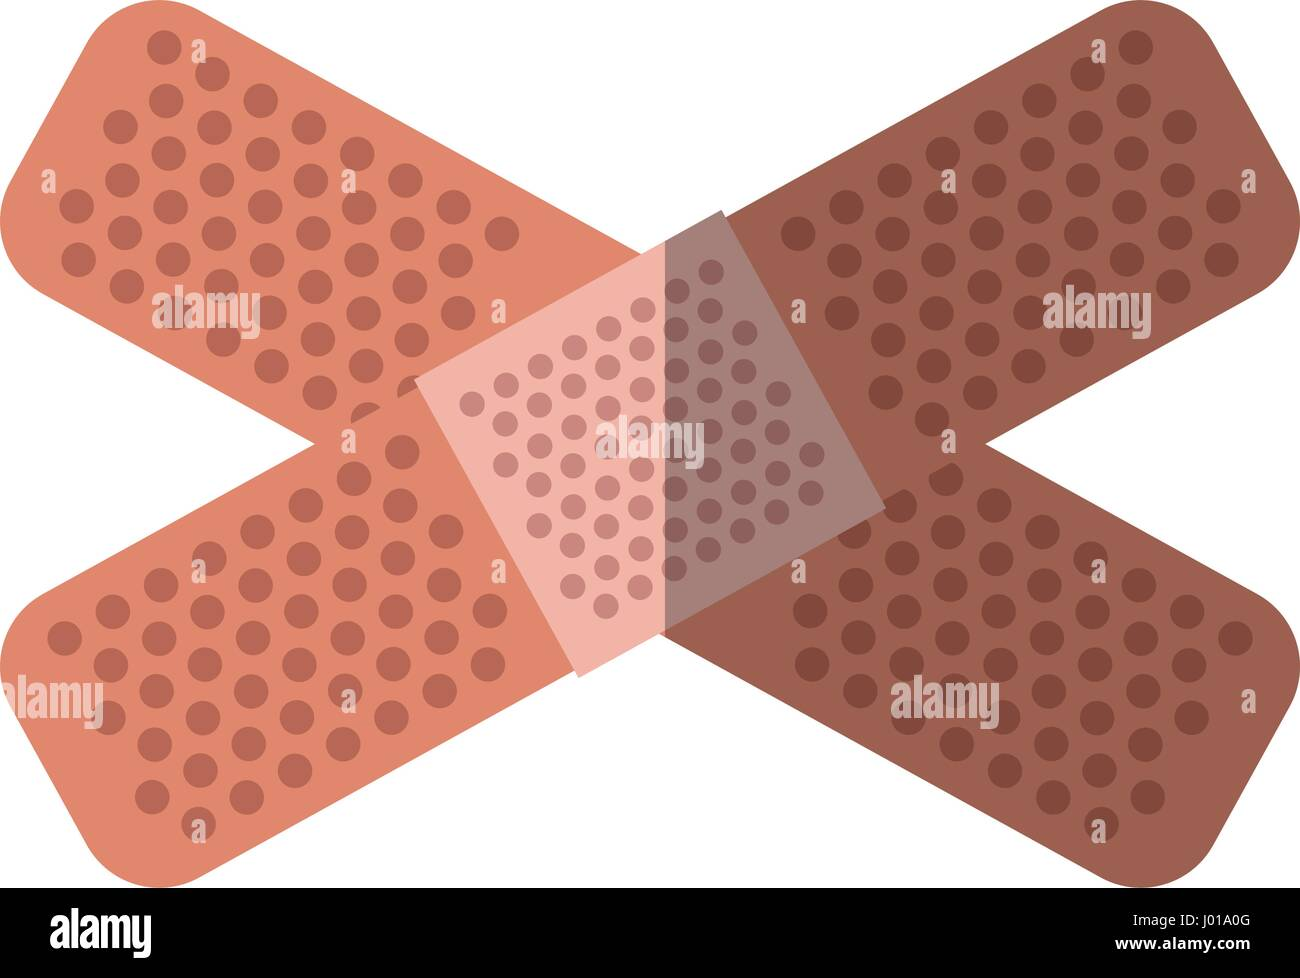 adhesive bandages icon Stock Vector